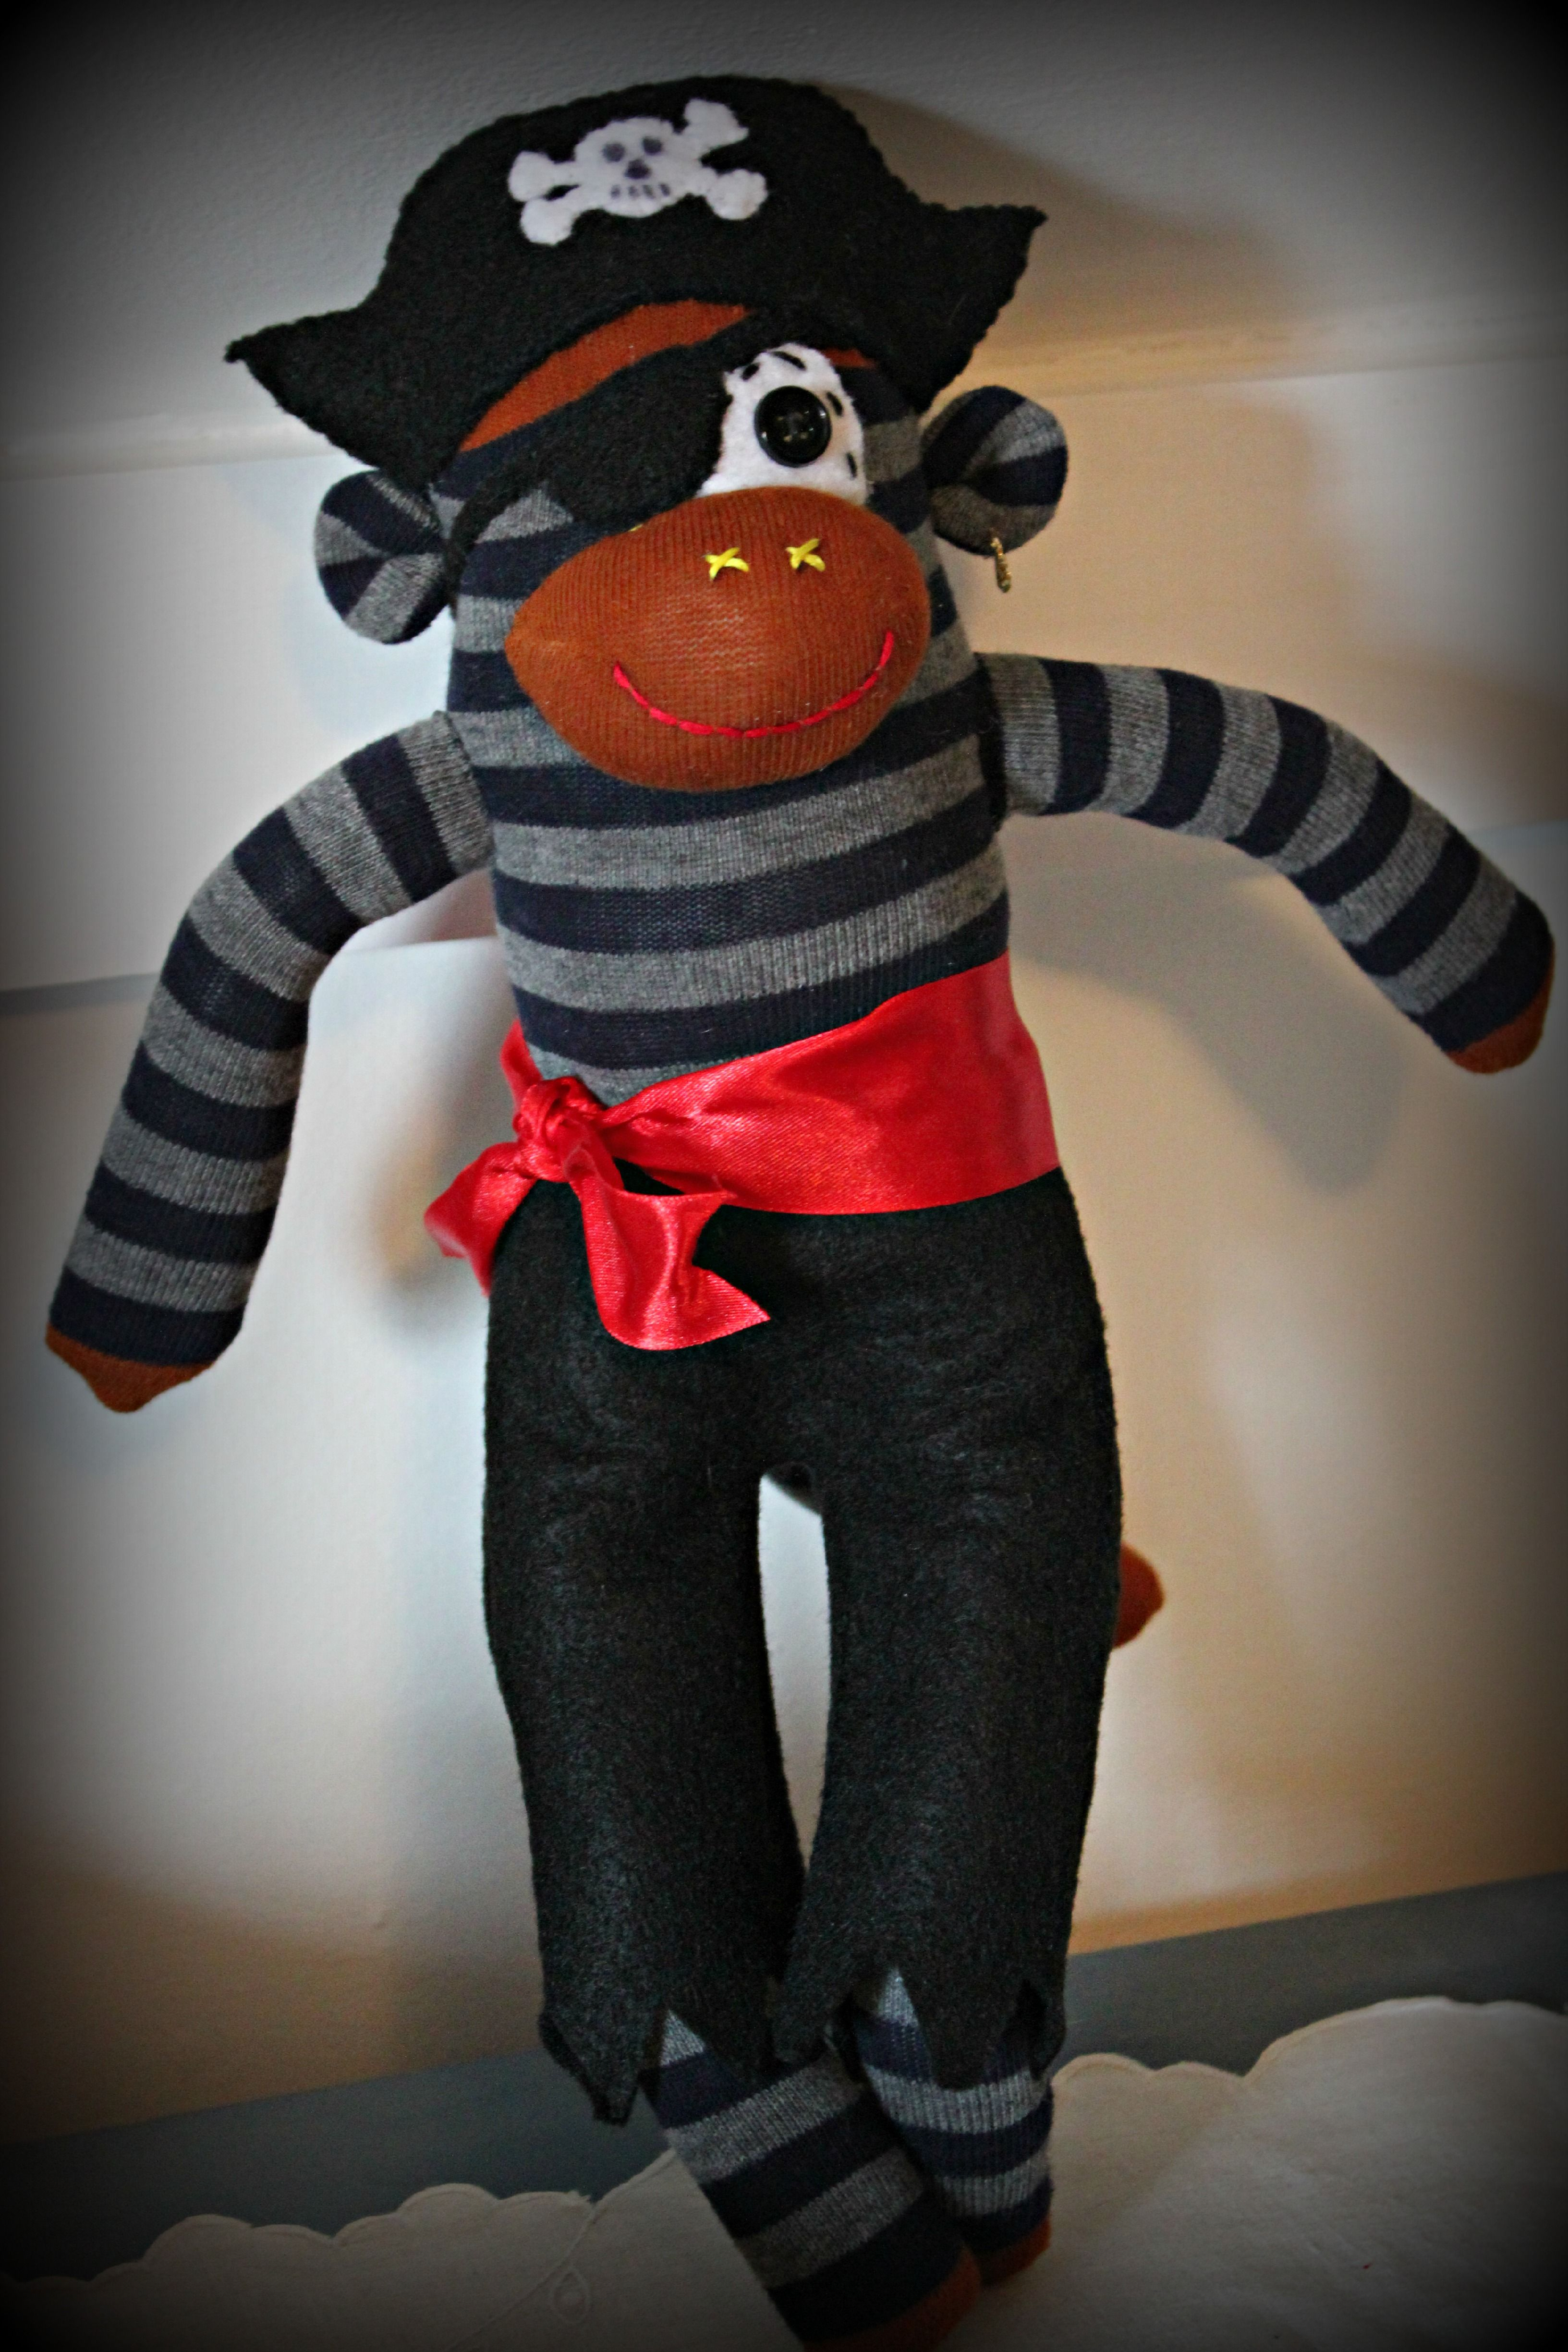 Pirate Monkey customs available at http://www.etsy.com/shop/KaysQuirkyCreations